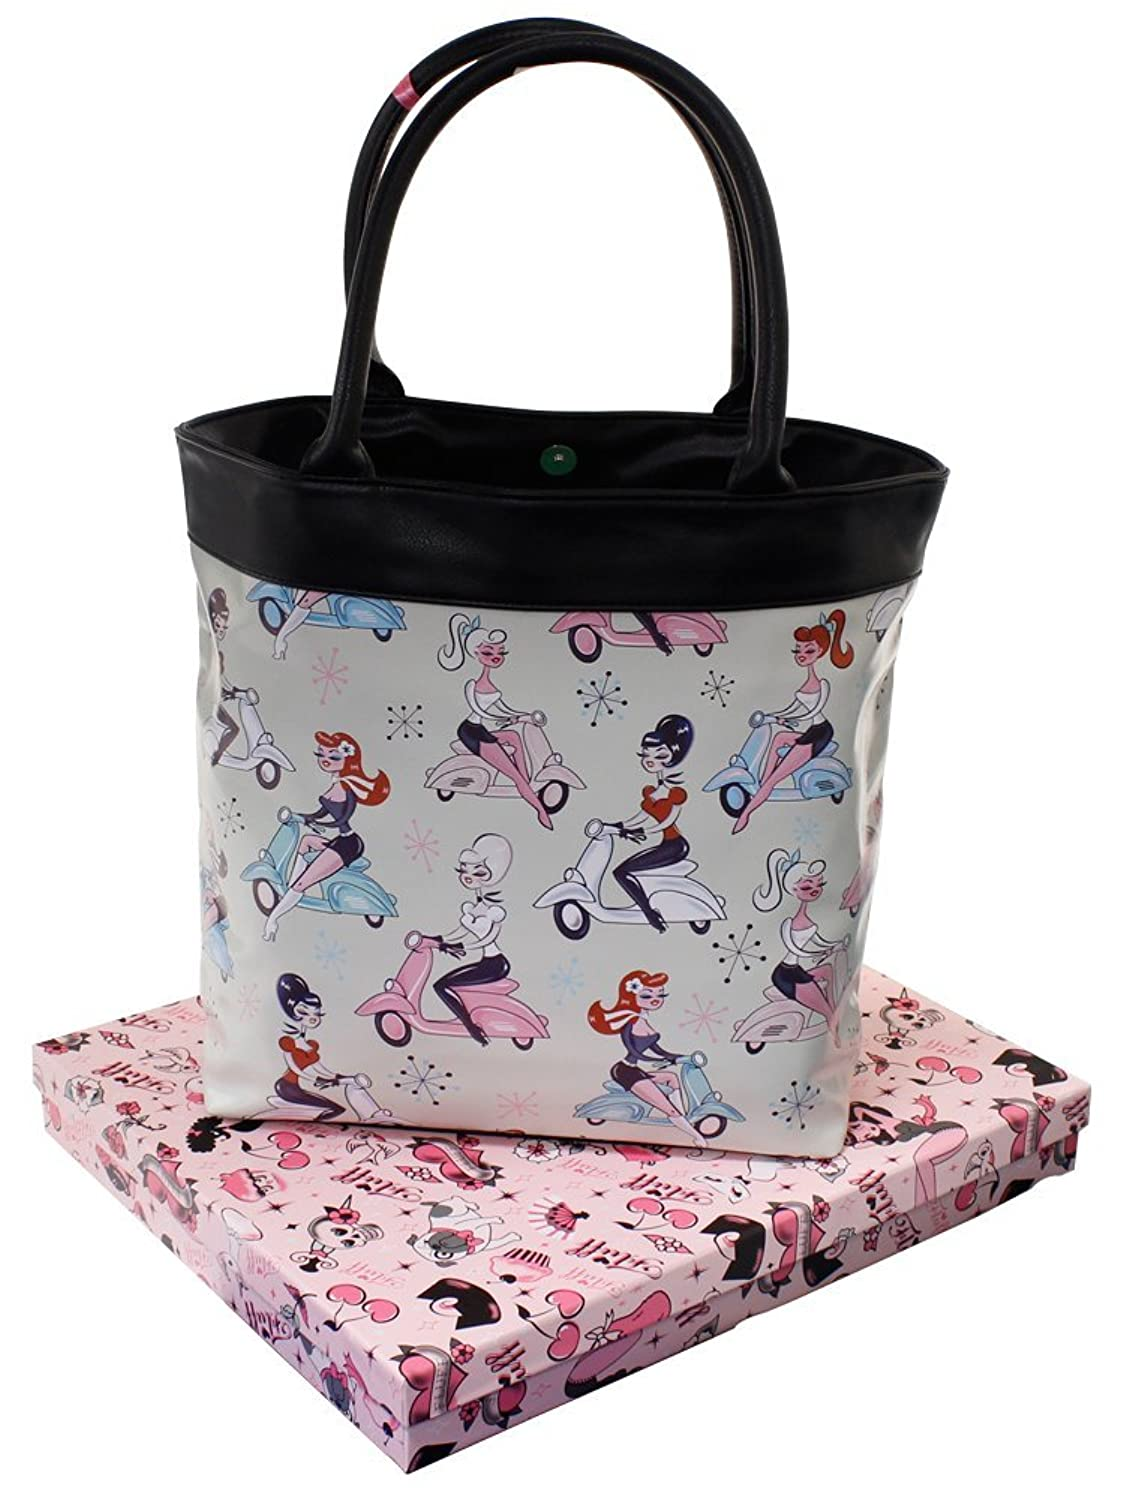 Fluff Medium Tote Bag - Special Collection 2015